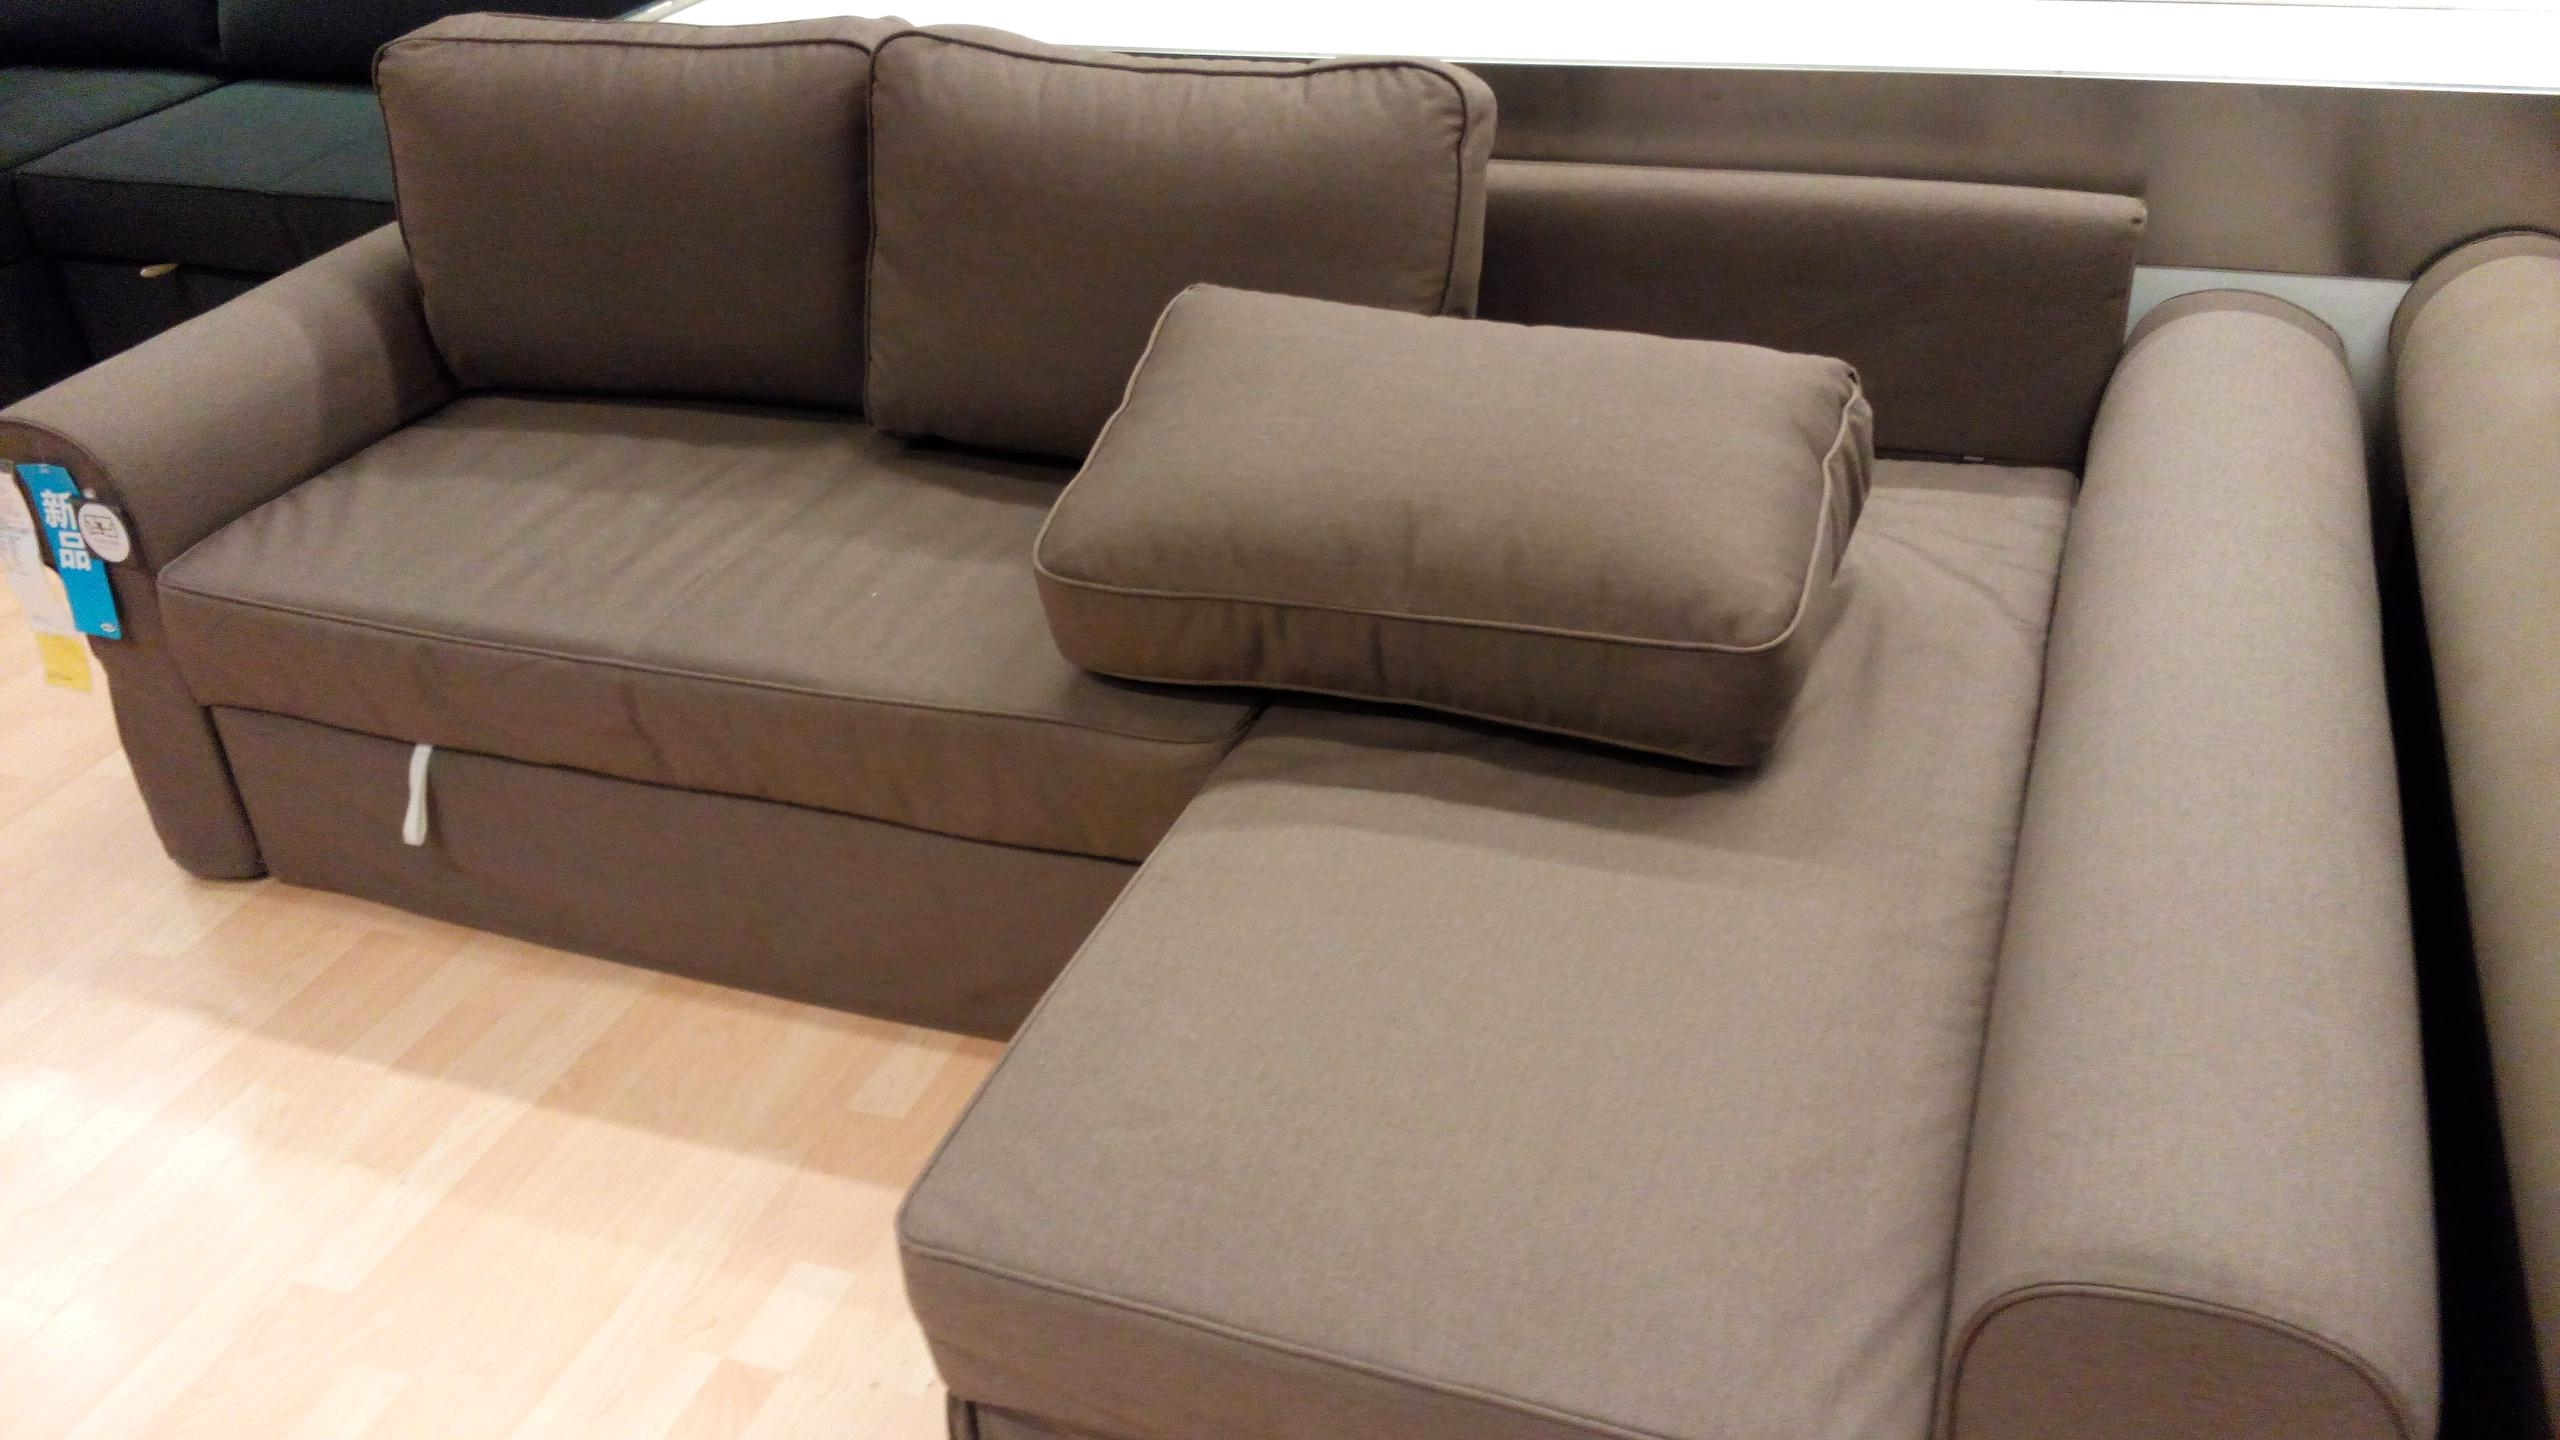 Furniture: Big Choice Of Styles And Colors Futon Beds Ikea For With Regard To Sleeper Sofa Sectional Ikea (Image 5 of 20)